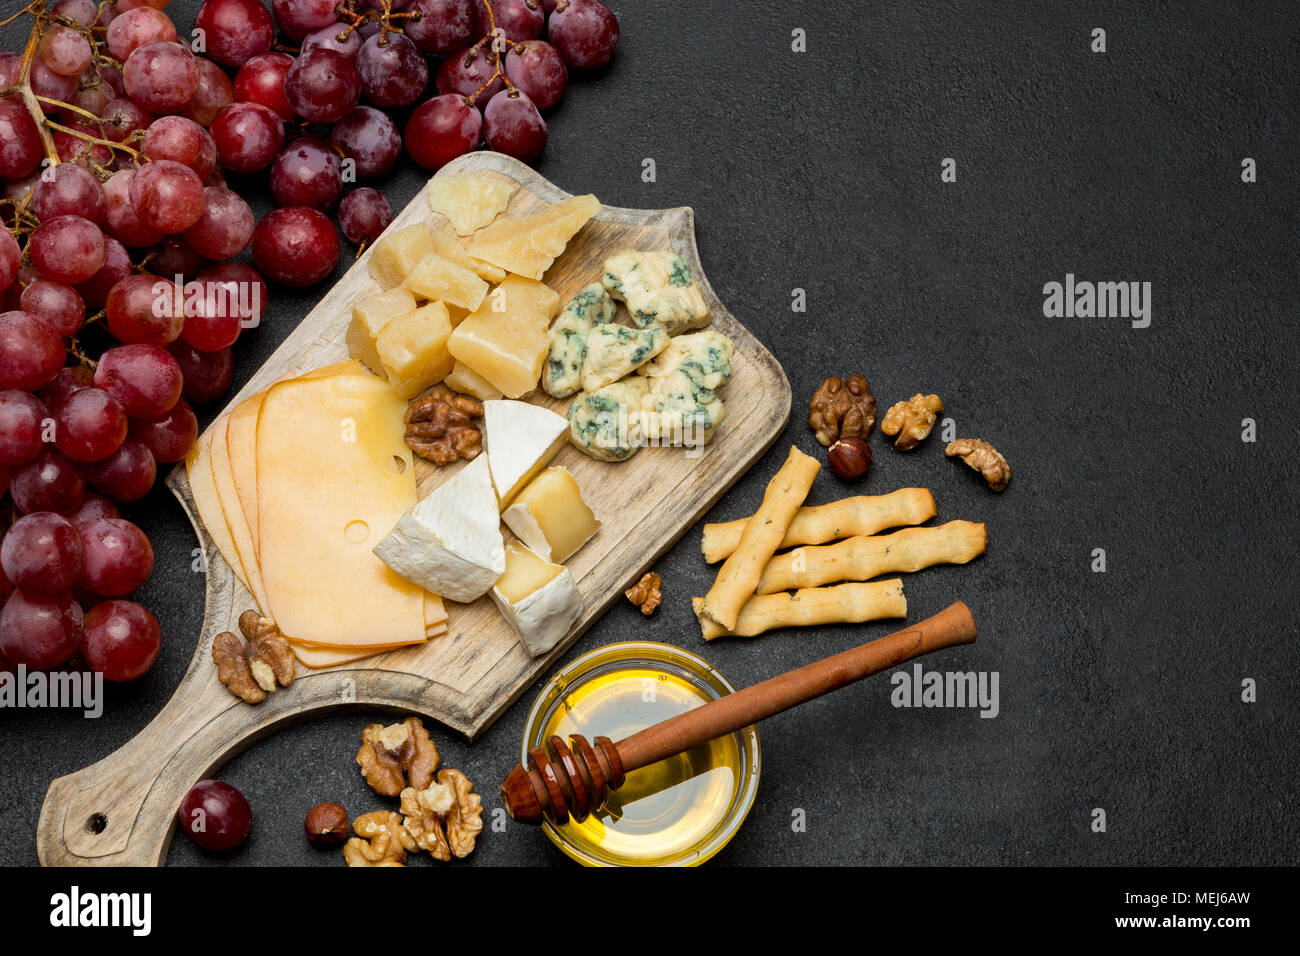 various types of cheese - brie, camembert, roquefort and cheddar - Stock Image